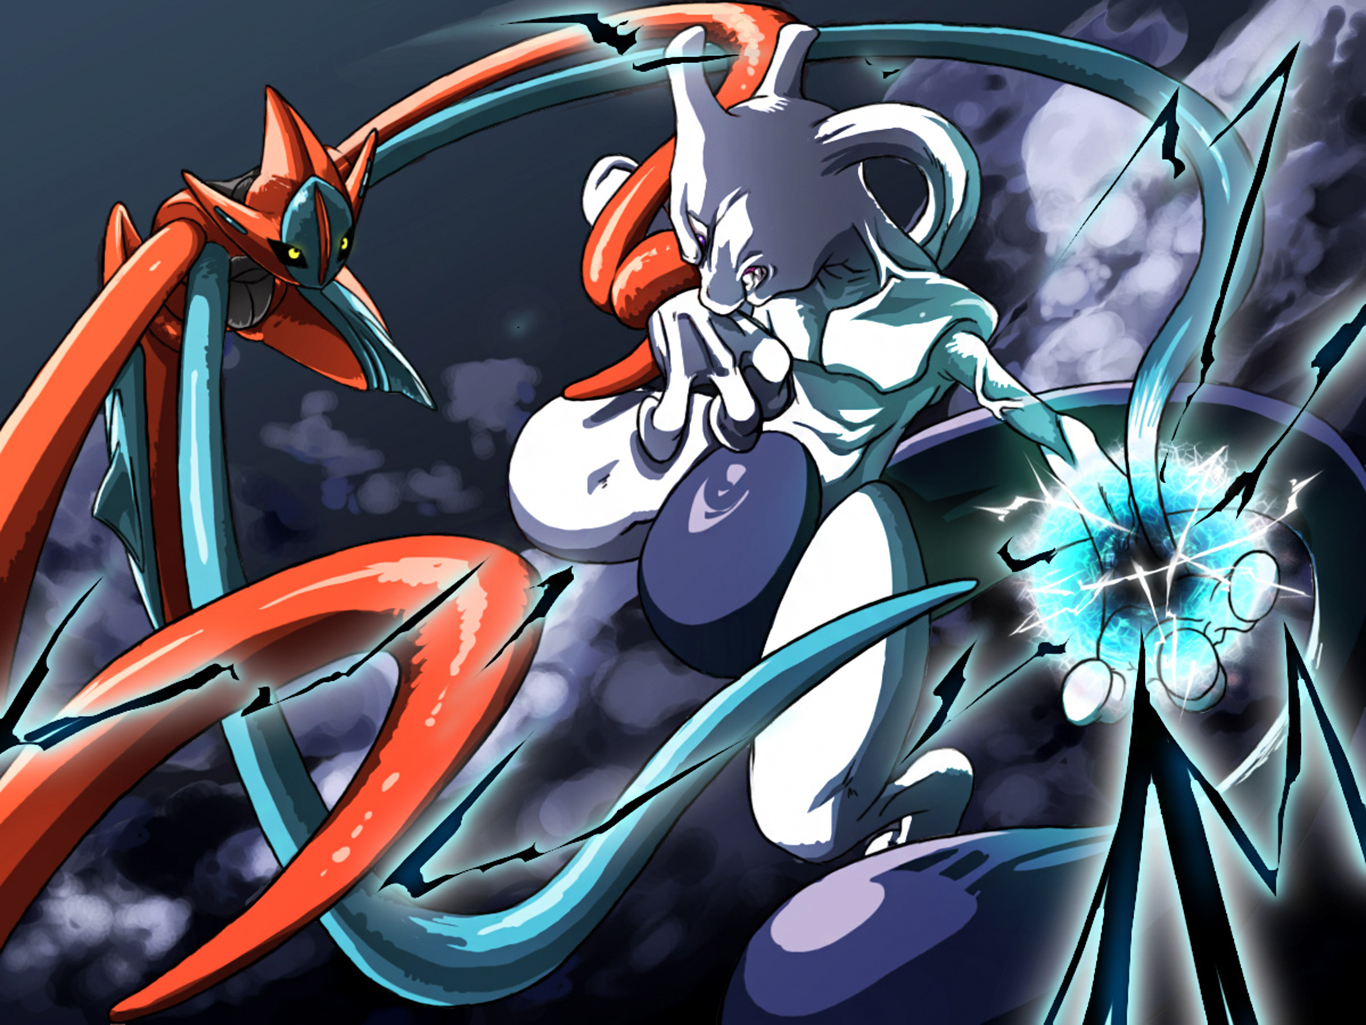 Deoxys vs Mewtwo